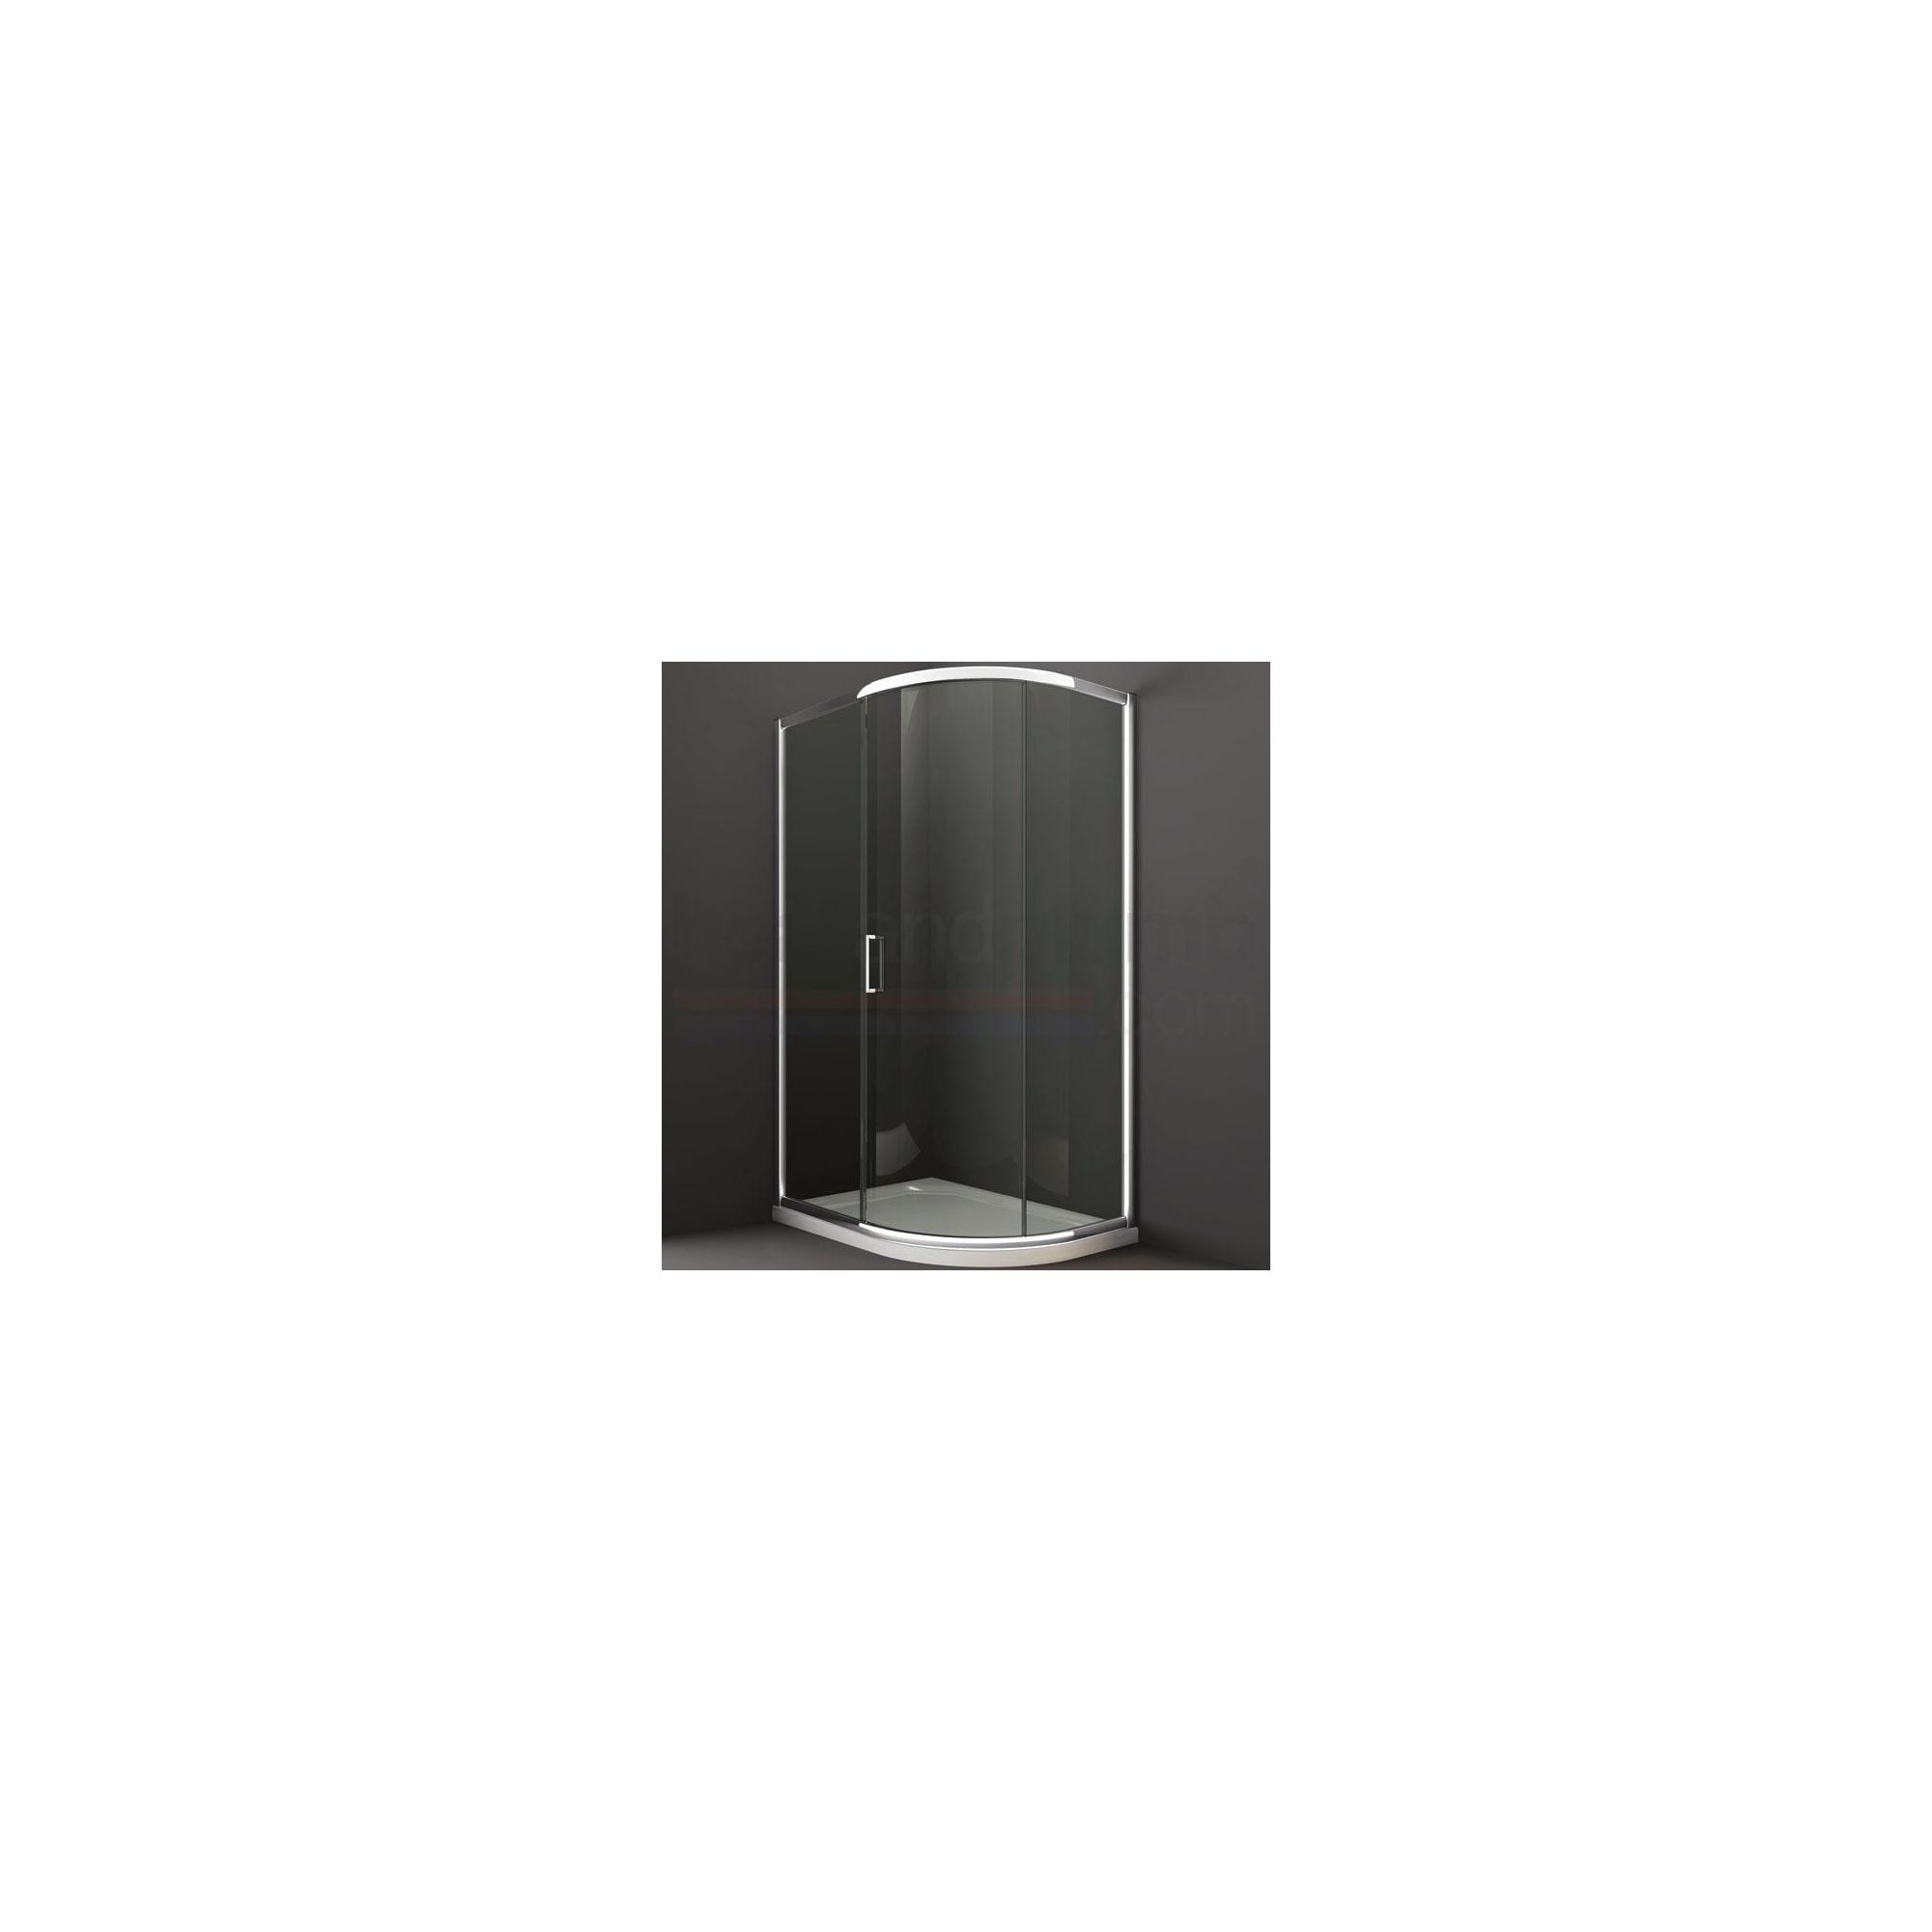 Merlyn Series 8 Sliding 1 Door Offset Quadrant Shower Enclosure, 1000mm x 800mm, Low Profile Tray, 8mm Glass at Tesco Direct